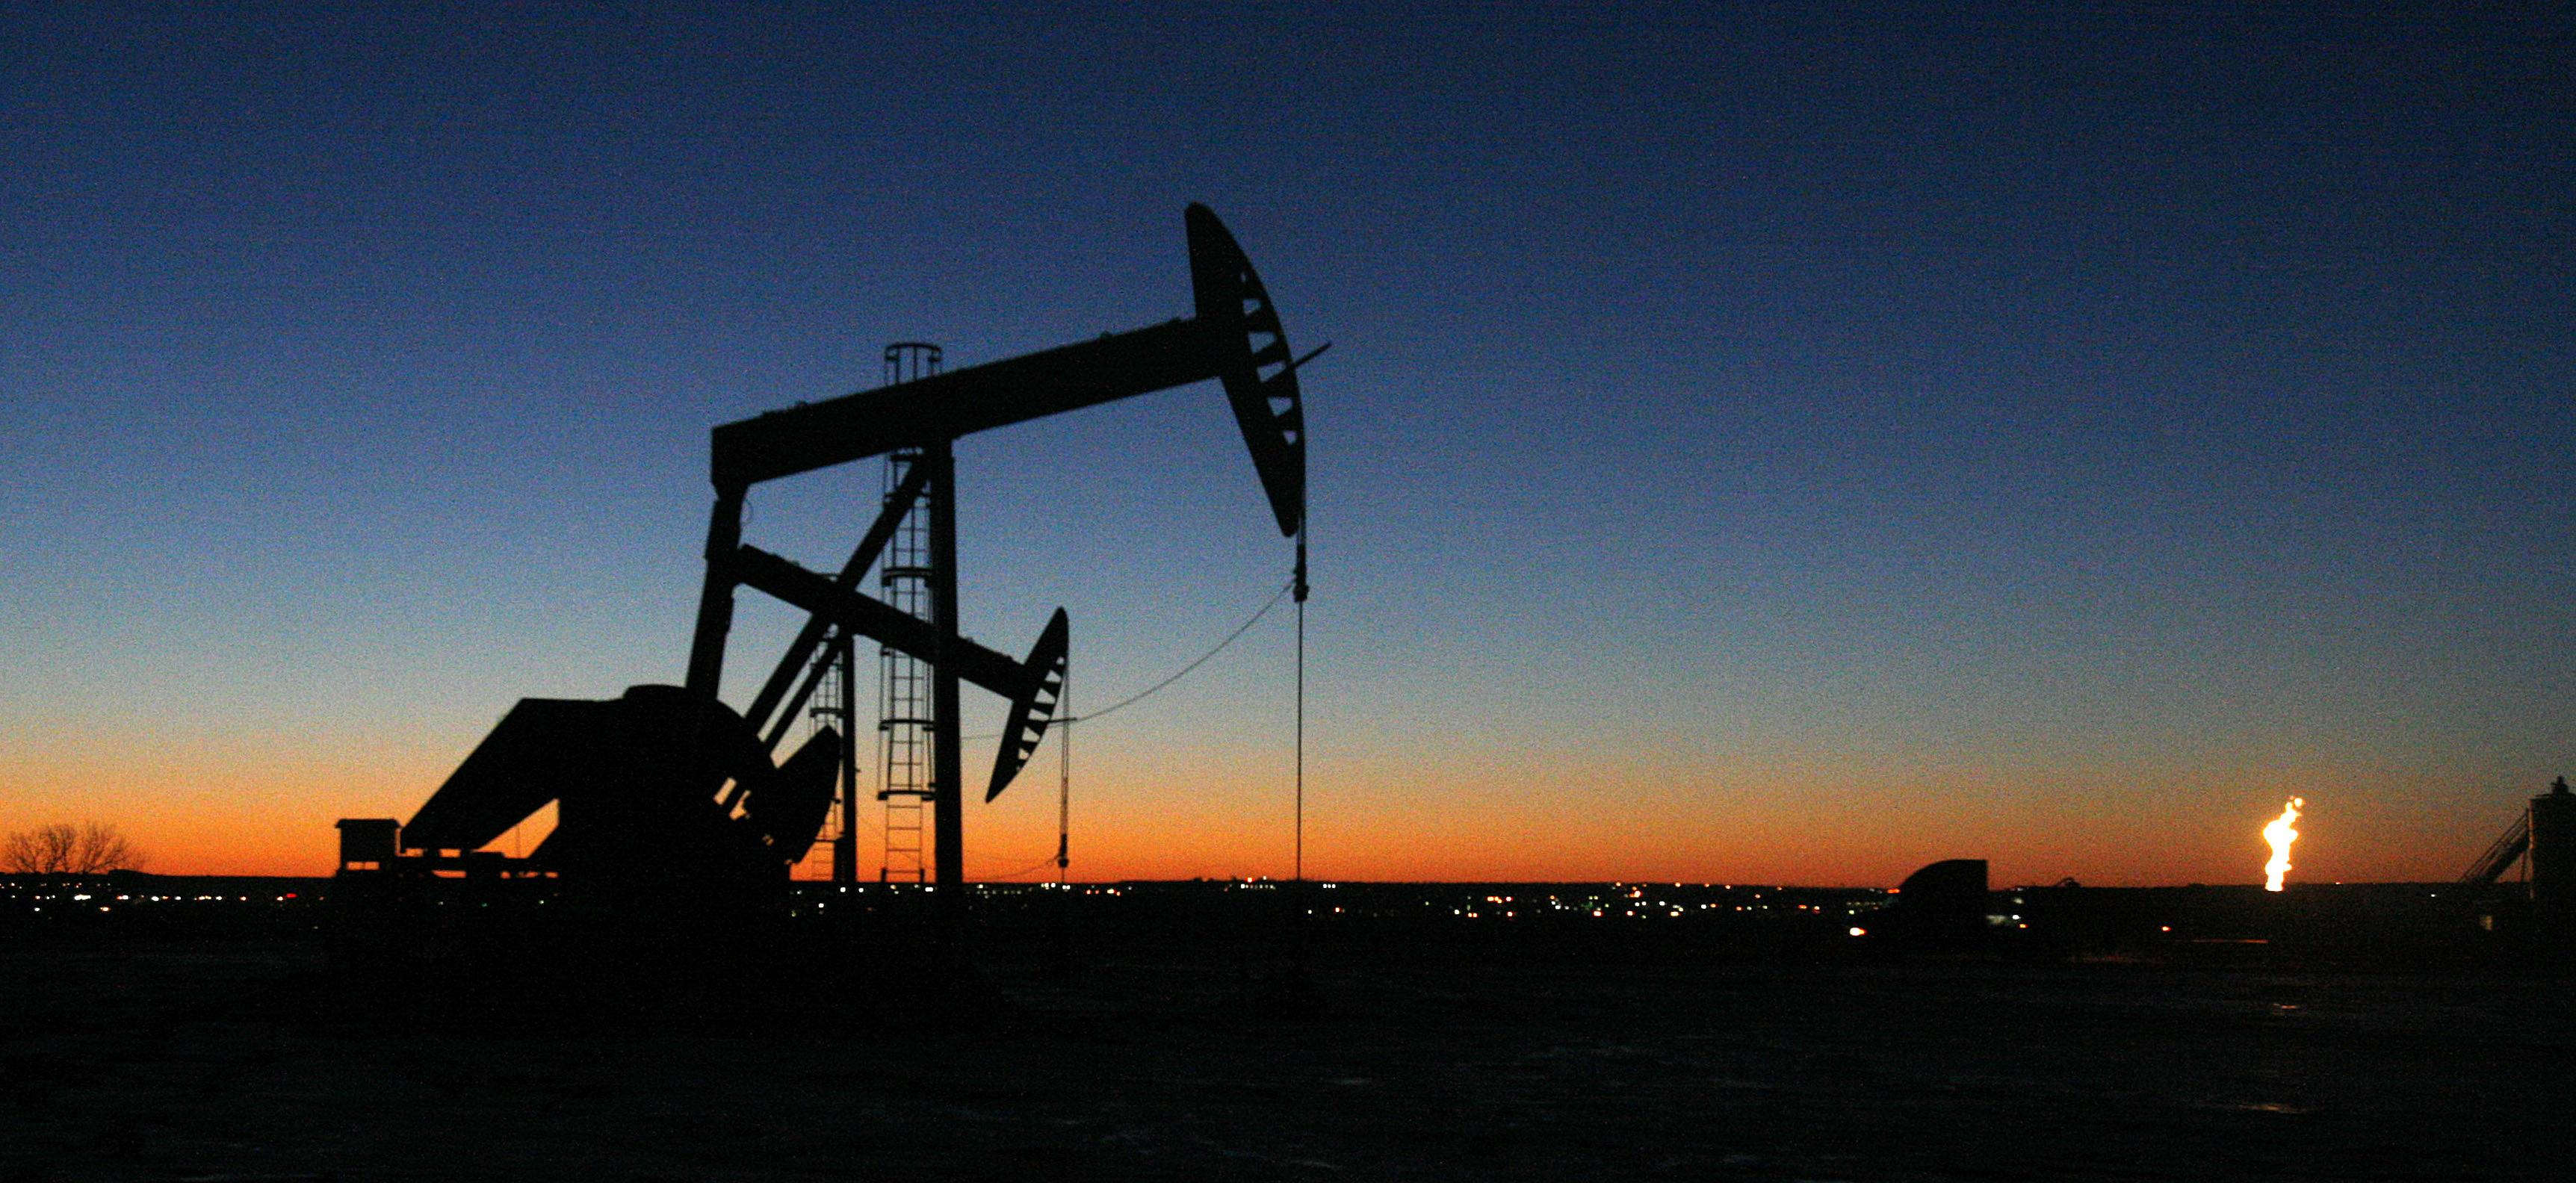 Benchmark U.S. crude for May delivery was up 69 cents at $104.43 a barrel at 0813 GMT in electronic trading on the New York Mercantile Exchange. The contract rose 34 cents Friday to close at close at $103.74.